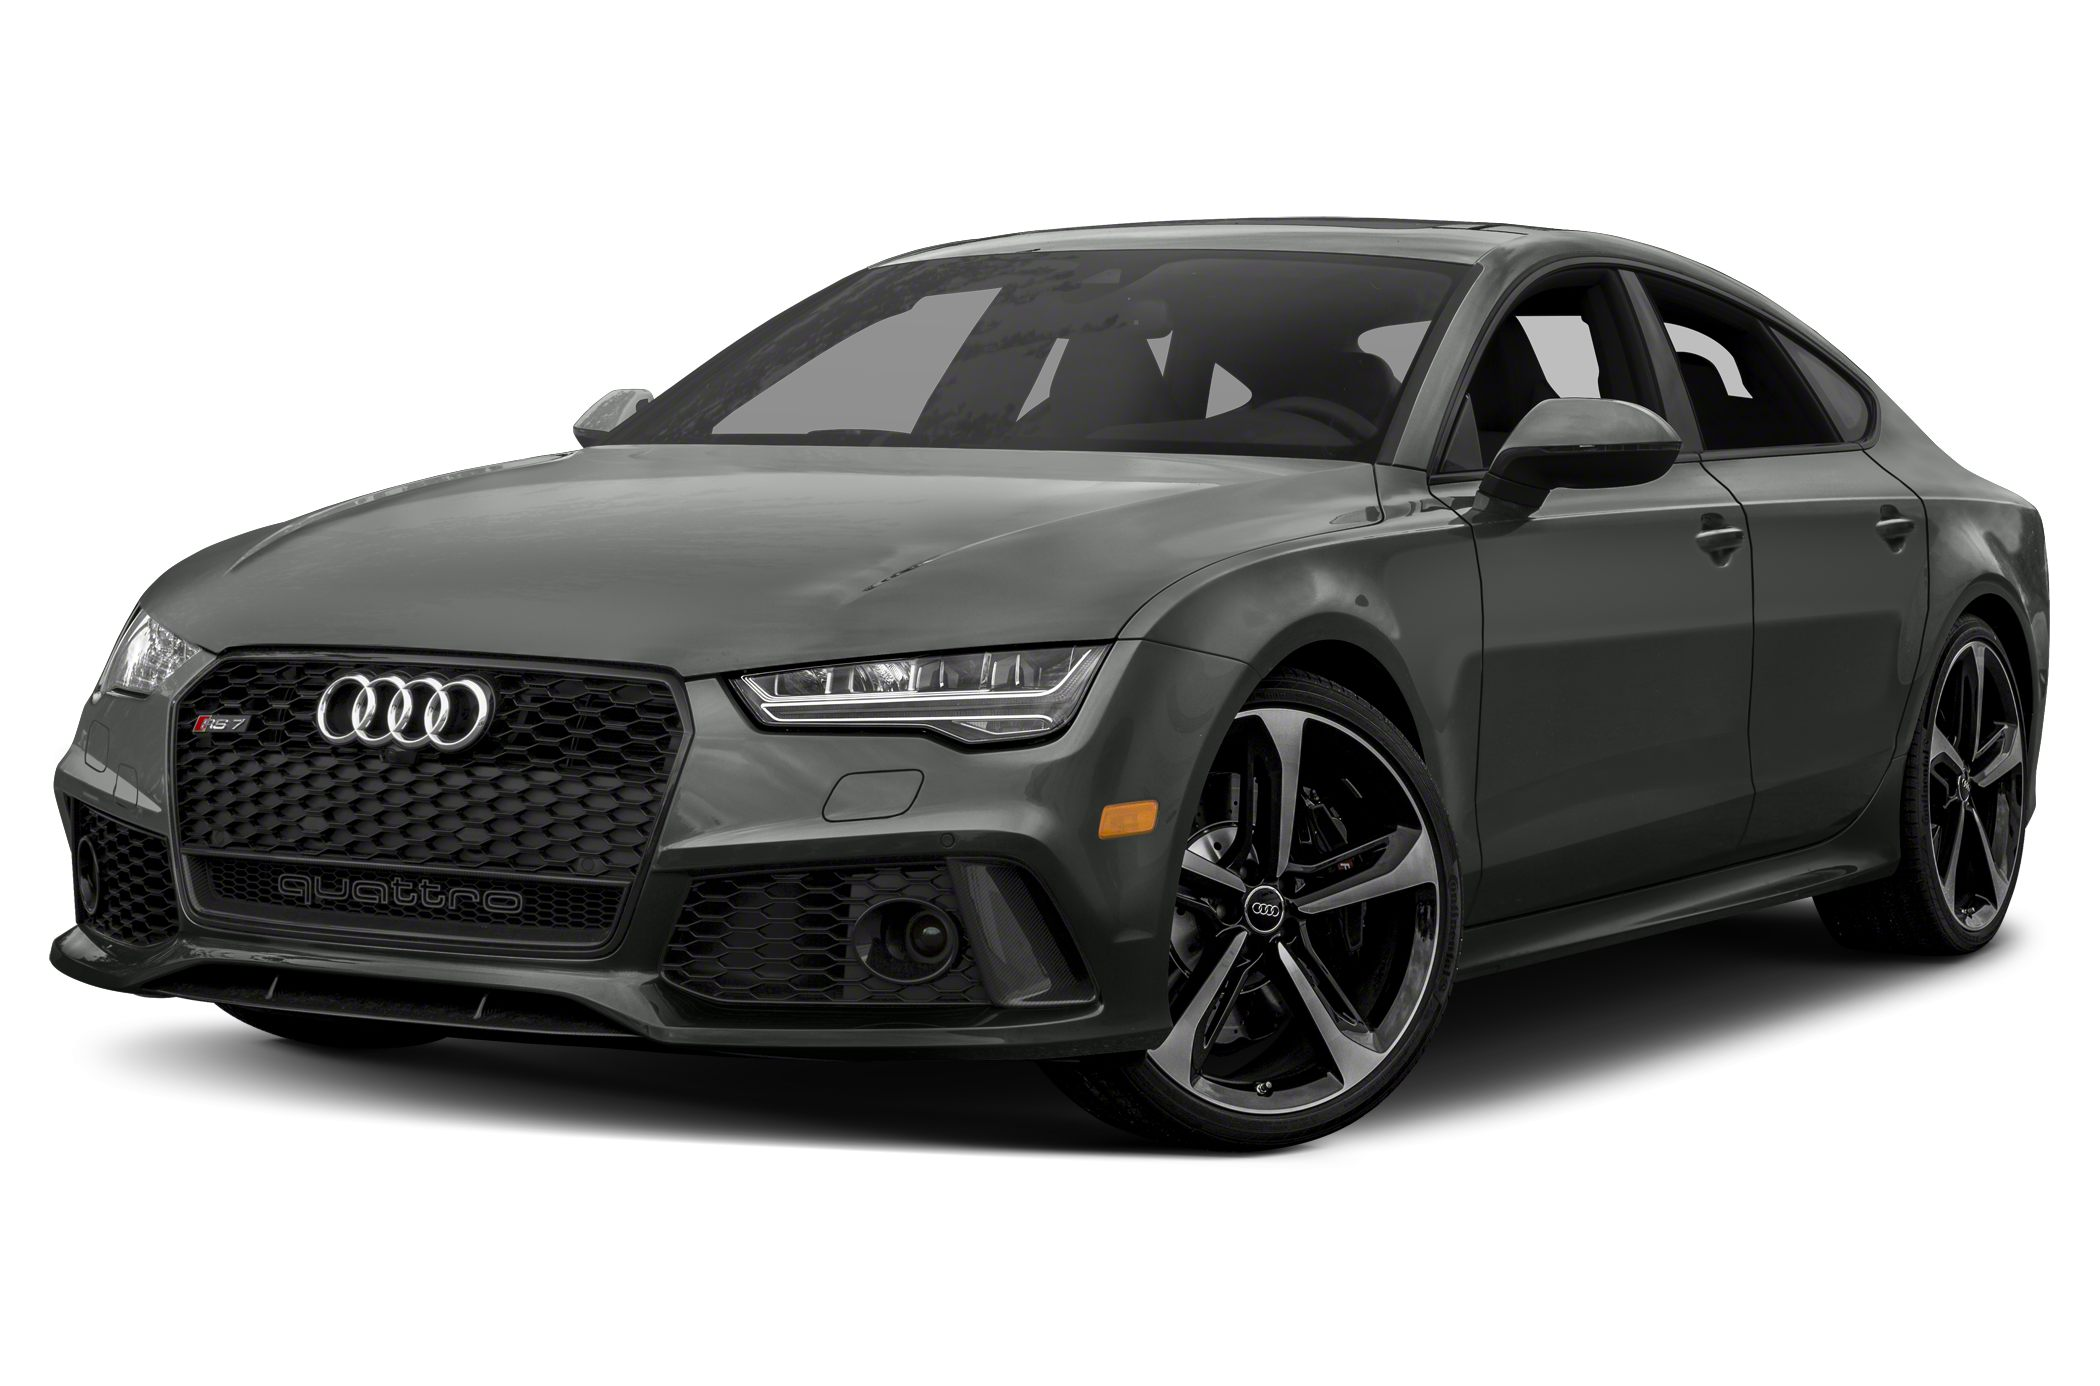 2018 Audi Rs 7 4 0t 4dr All Wheel Drive Quattro Sportback Specs And Prices